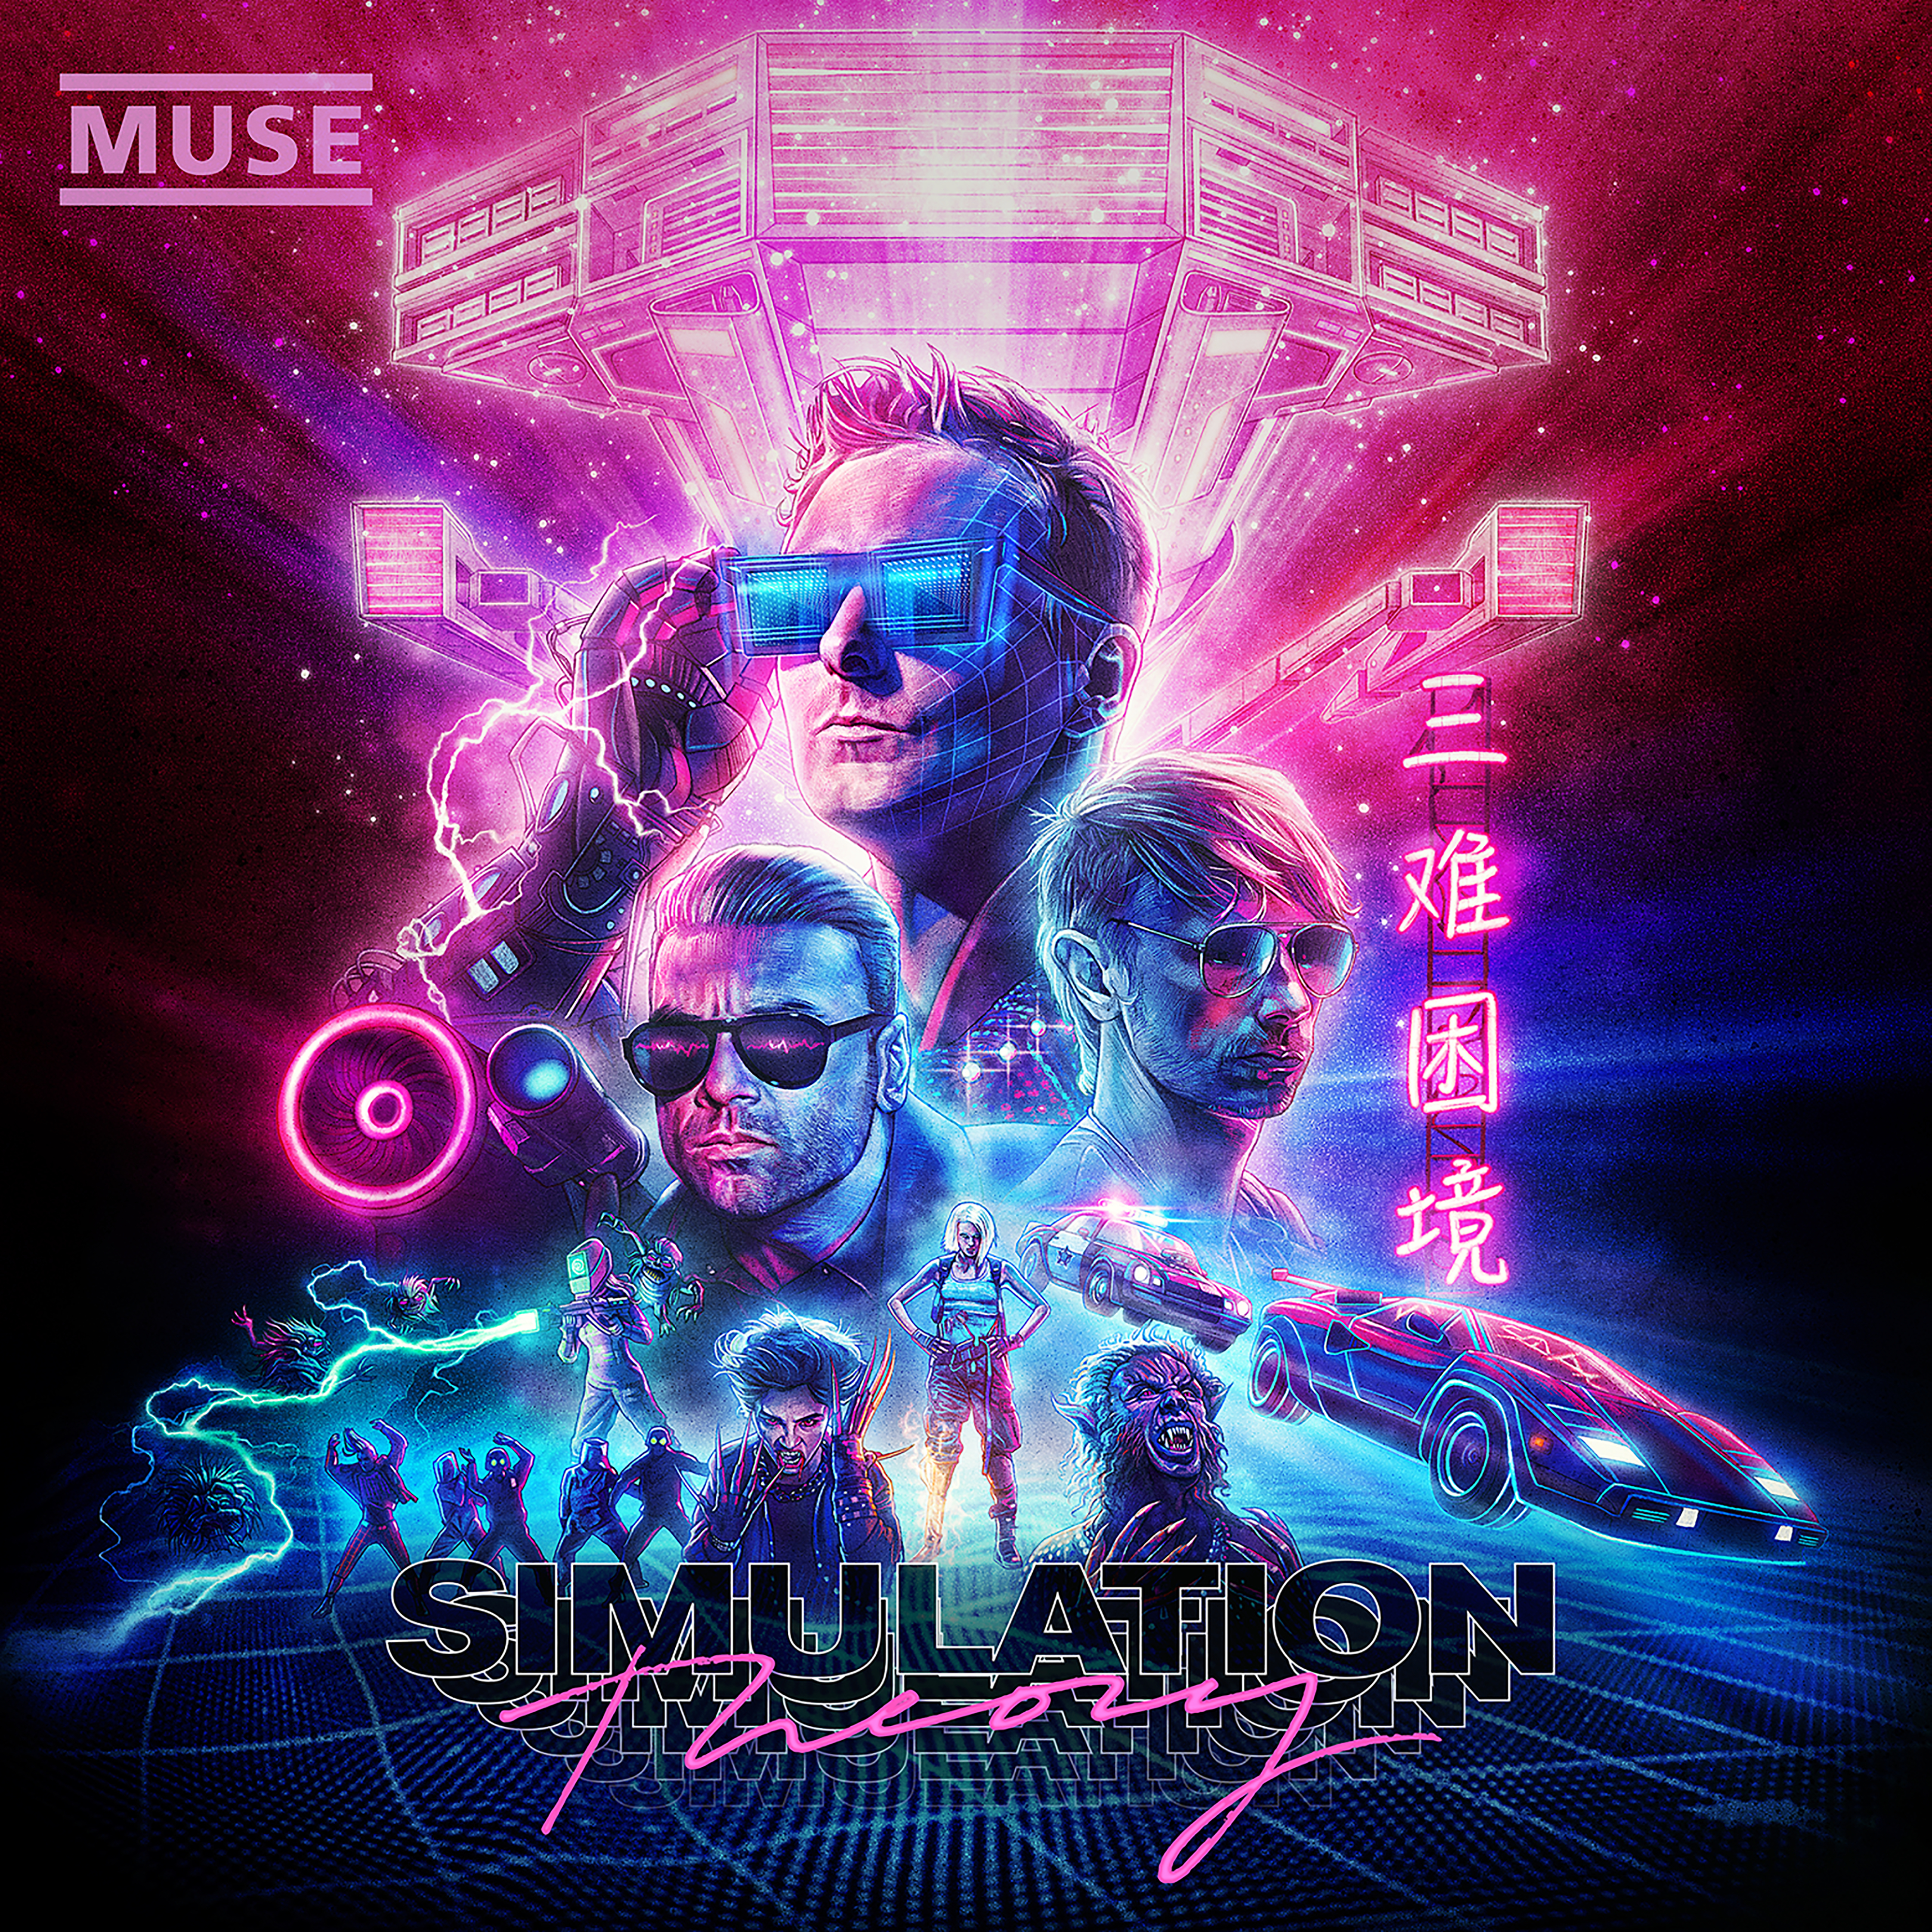 Muse Radio: Listen to Free Music & Get The Latest Info